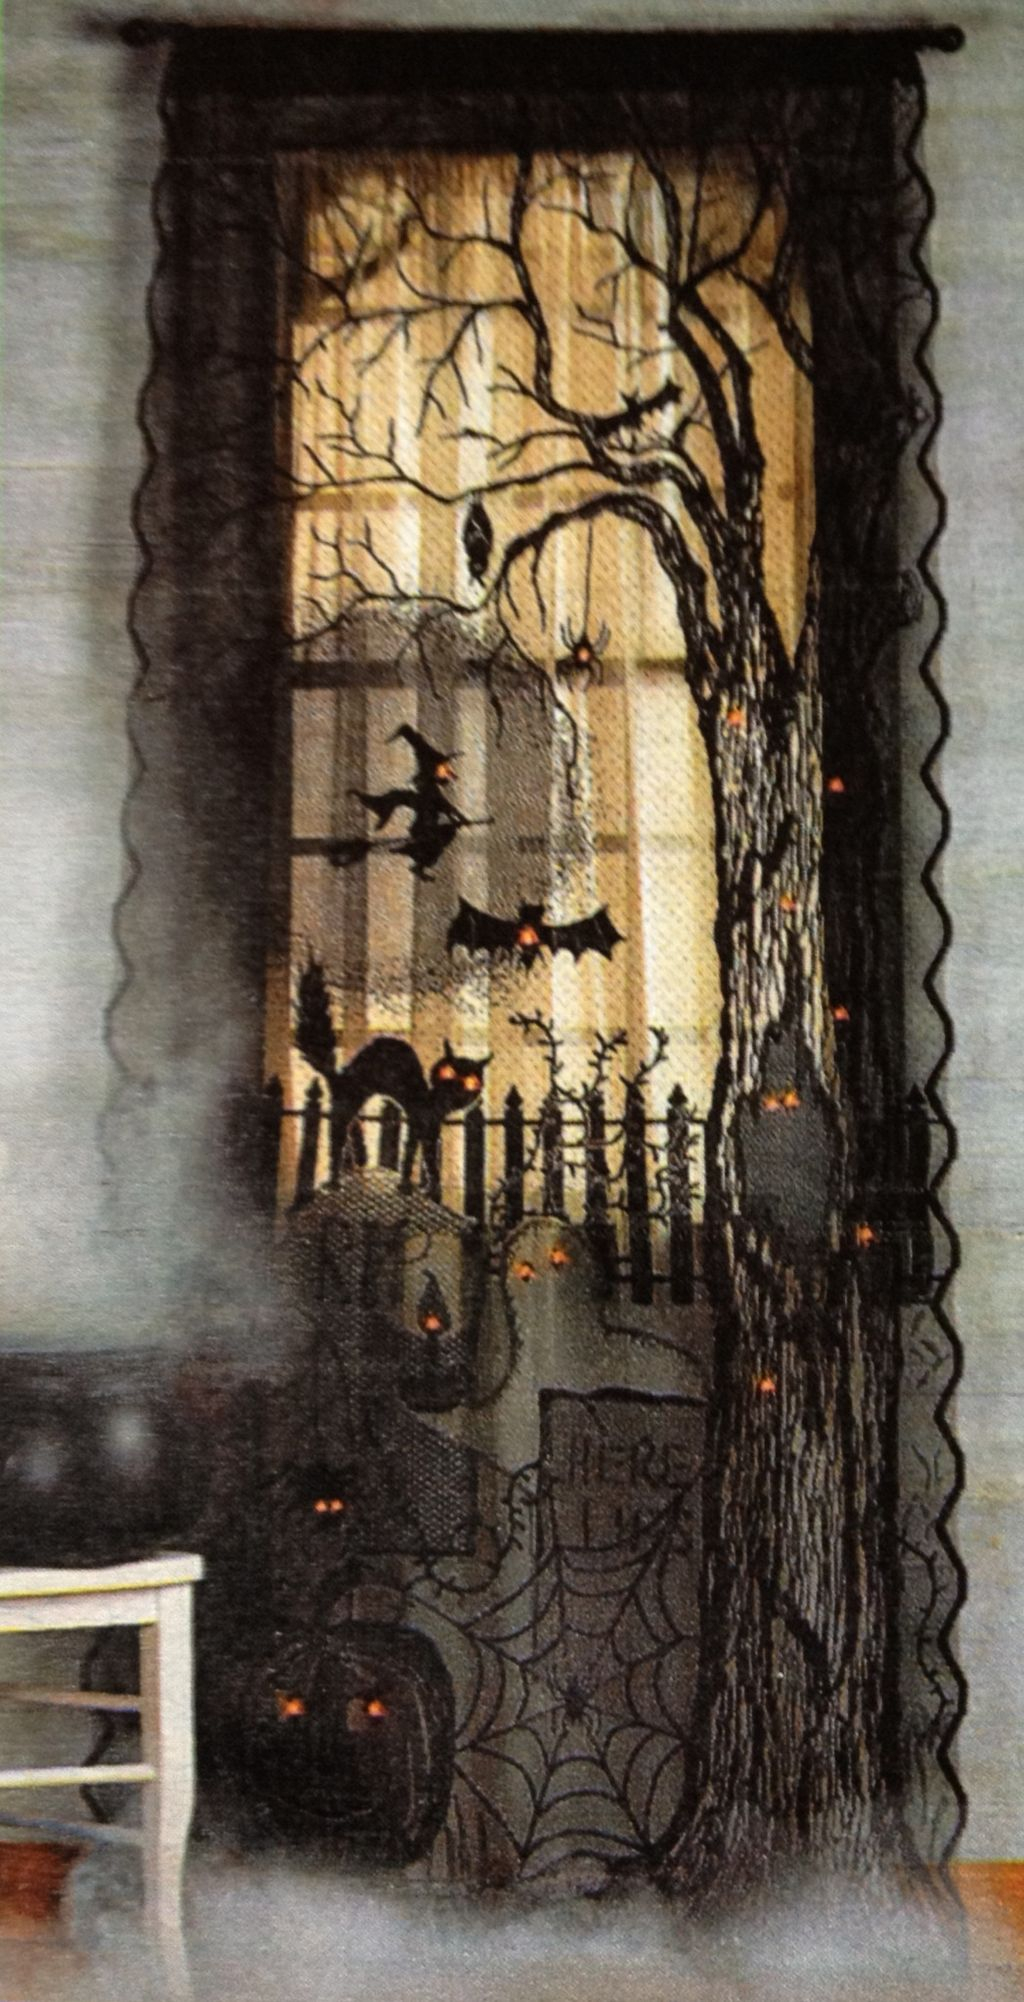 Scary But Creative DIY Halloween Window Decorations Ideas You Should Try 54